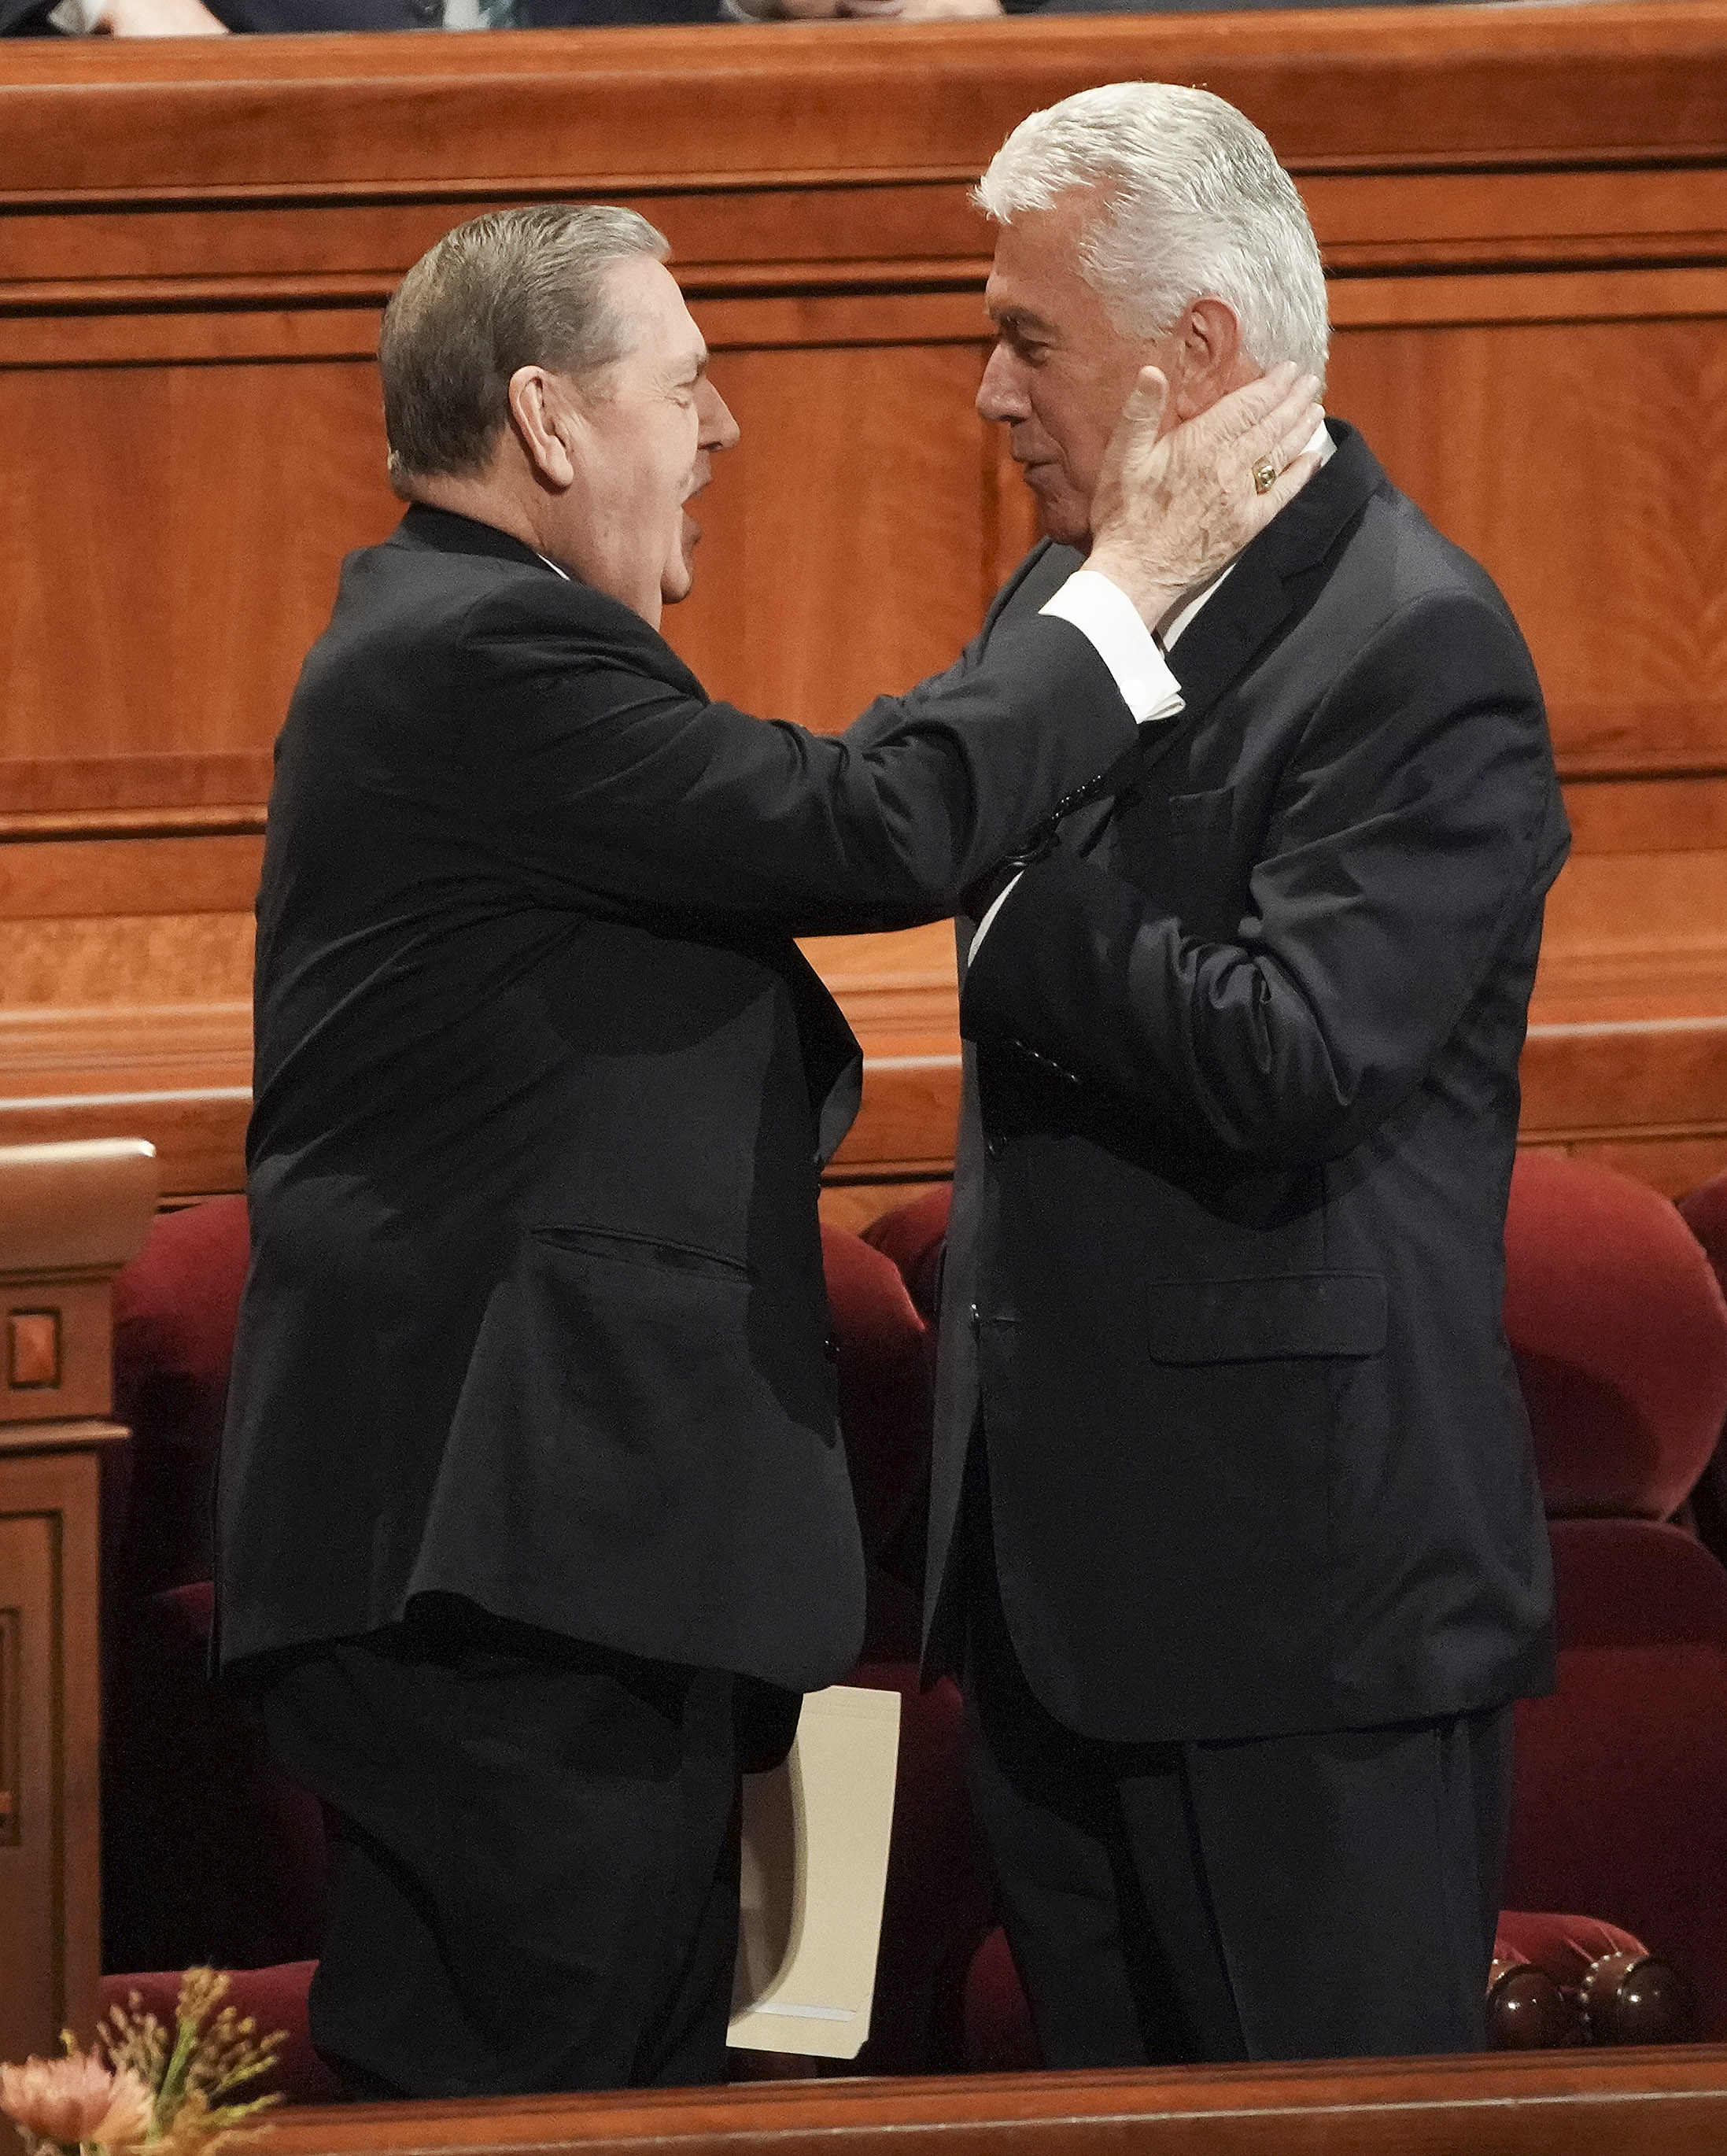 Elder Jeffrey R. Holland, left, and Elder Dieter F. Uchtdorf, of the Quorum of the Twelve Apostles, greet prior to the Saturday morning session of the 189th Semiannual General Conference of The Church of Jesus Christ of Latter-day Saints in the Conference Center in Salt Lake City on Saturday, Oct. 5, 2019.